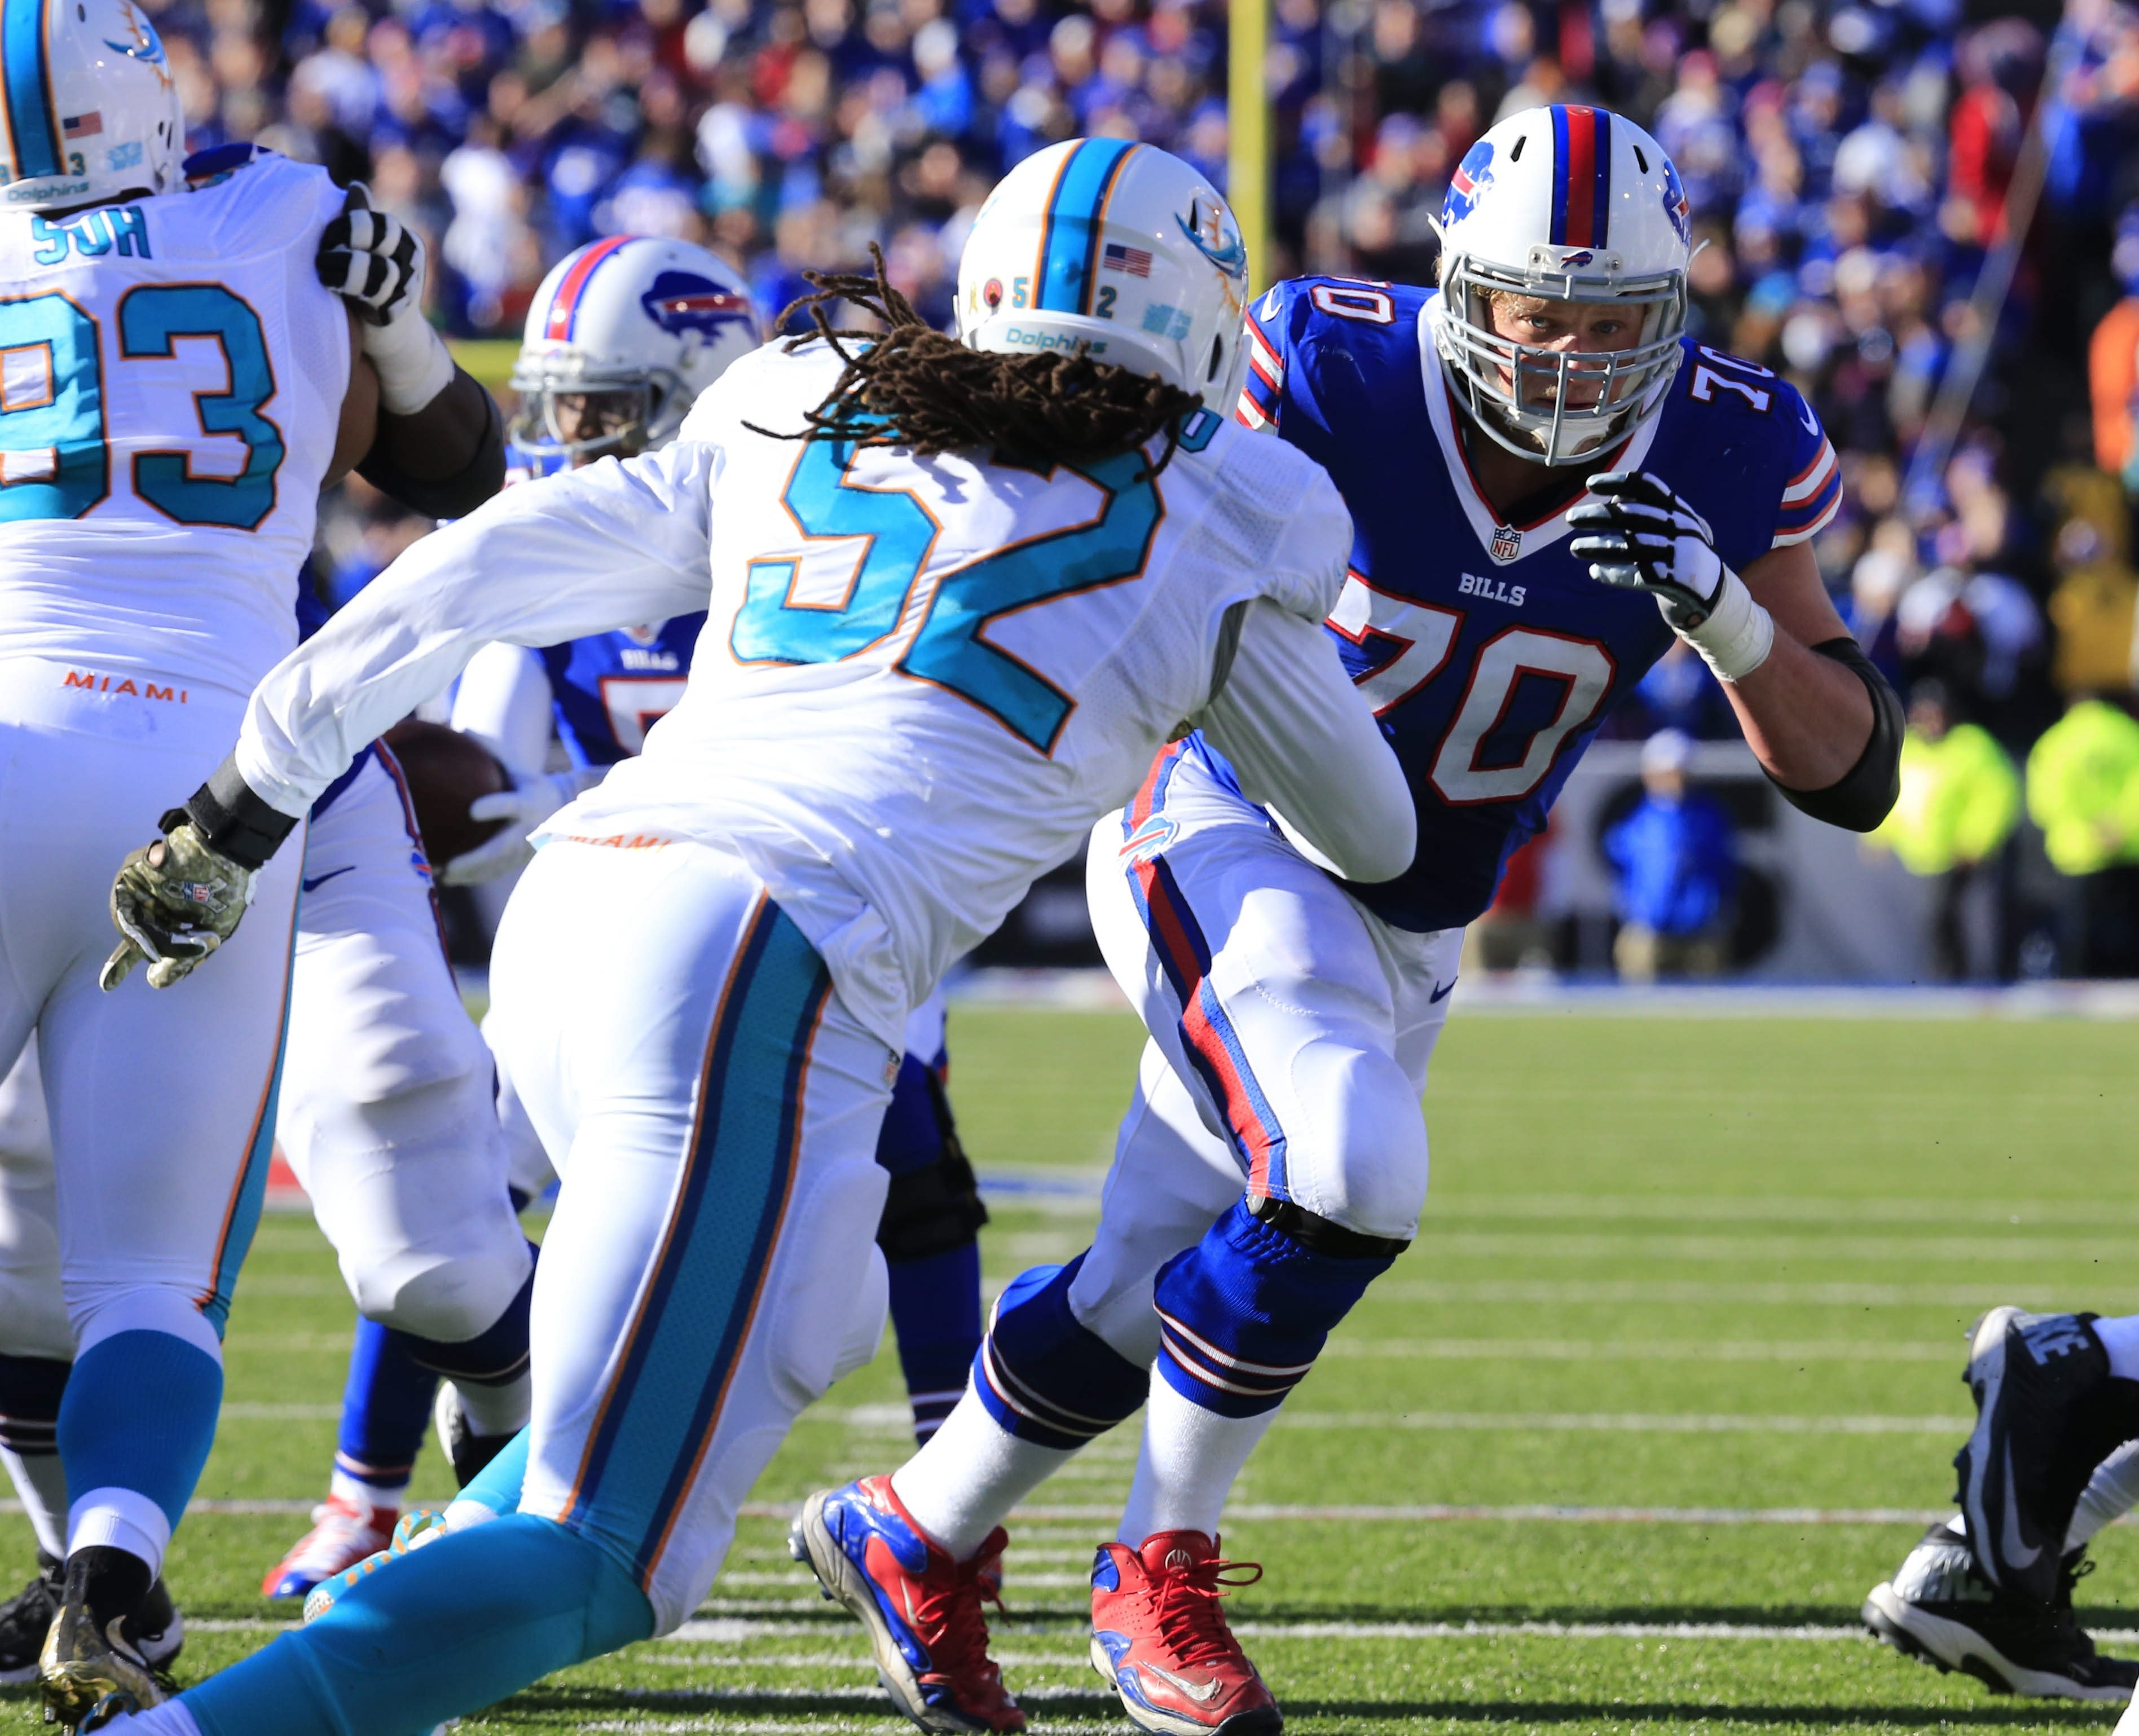 Buffalo Bills lineman Eric Wood blocks against the Miami Dolphins during the second quarter at Ralph Wilson Stadium on Sunday, Nov. 8, 2015.  (Harry Scull Jr./Buffalo News)